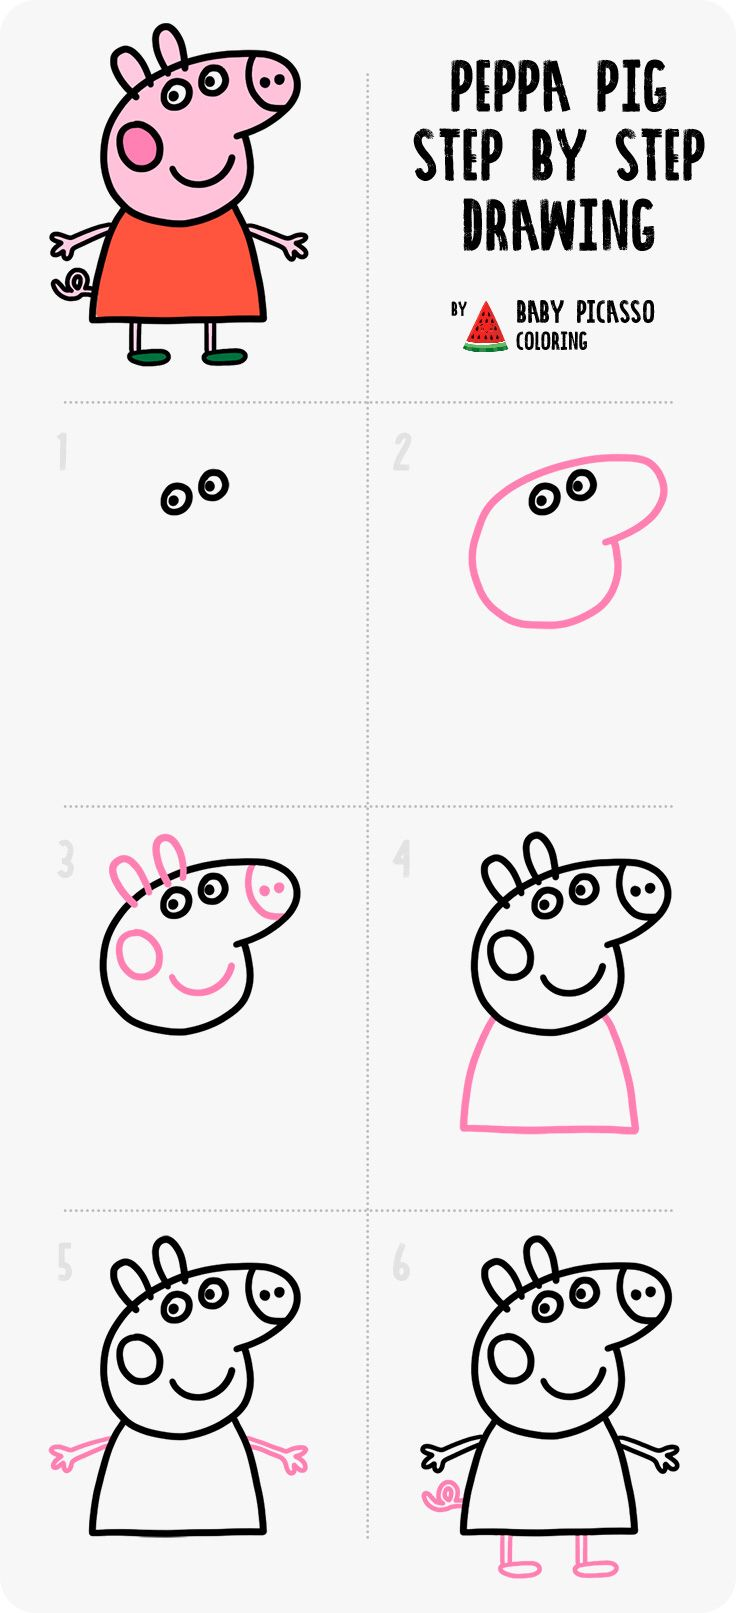 Peppa Pig Family Drawing And Coloring Pages For Kids And Toddlers Youtube Peppa Pig Family Peppa Pig Peppa Pig Drawing